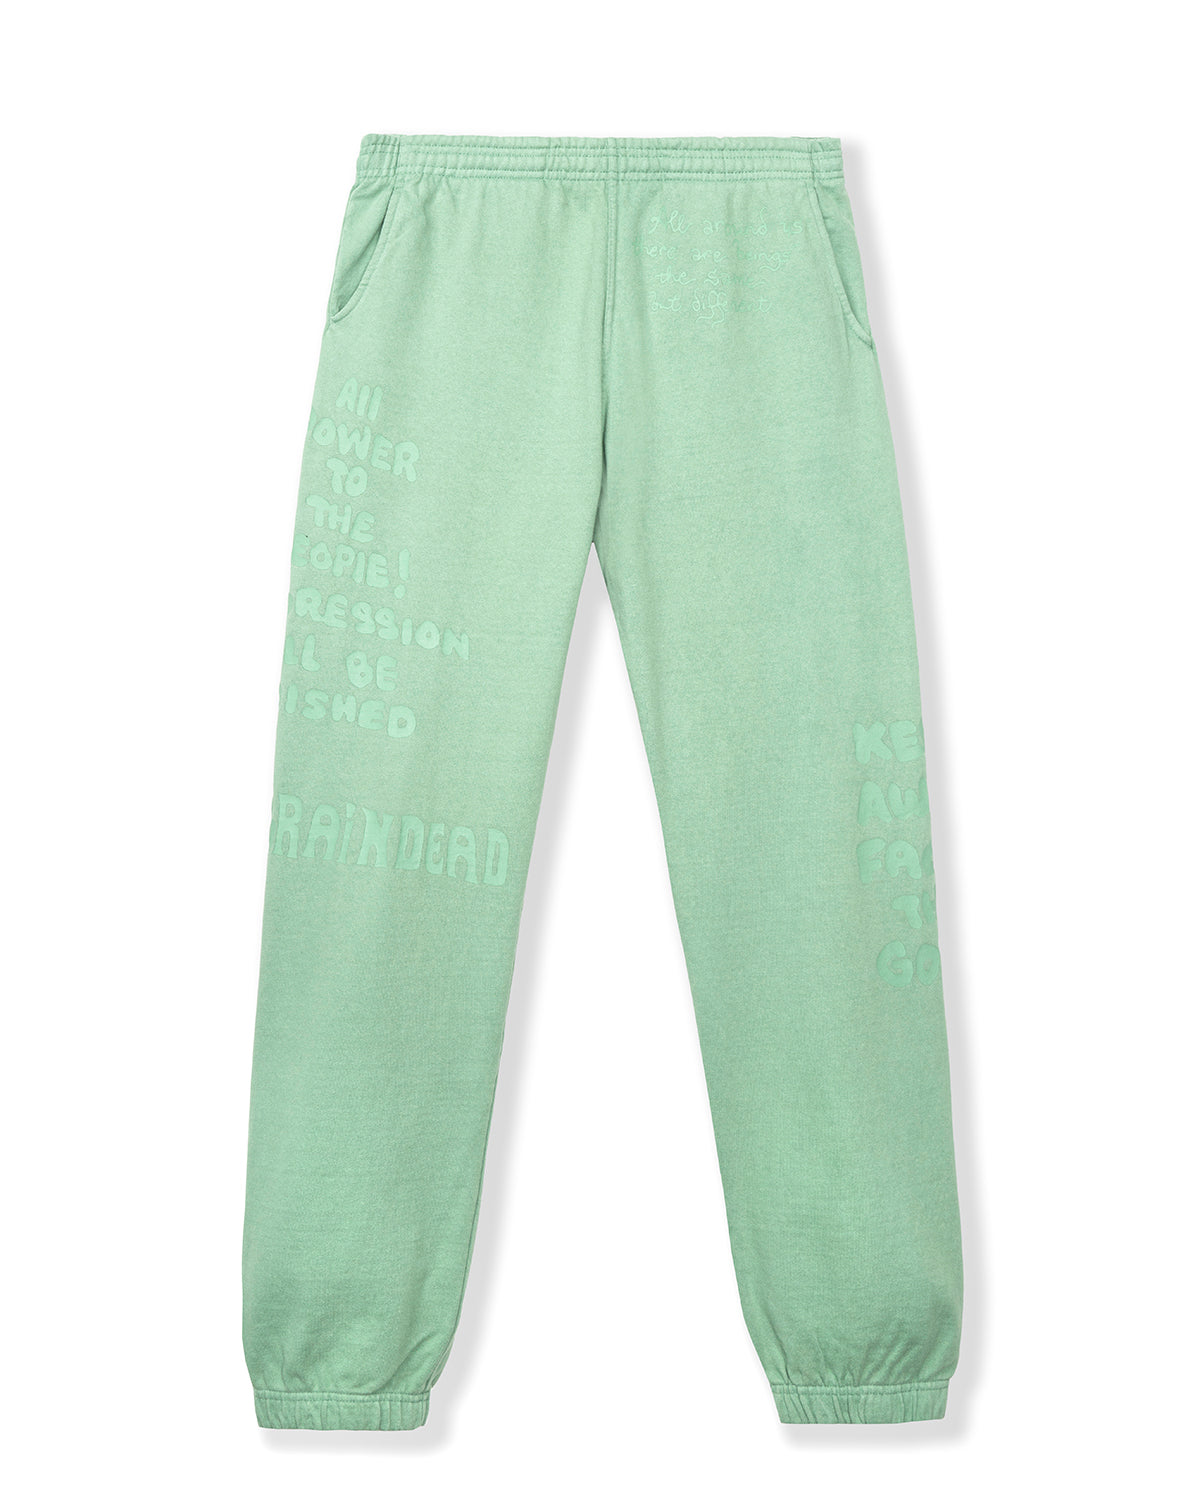 Tonal Type Print Sweatpants - Putty